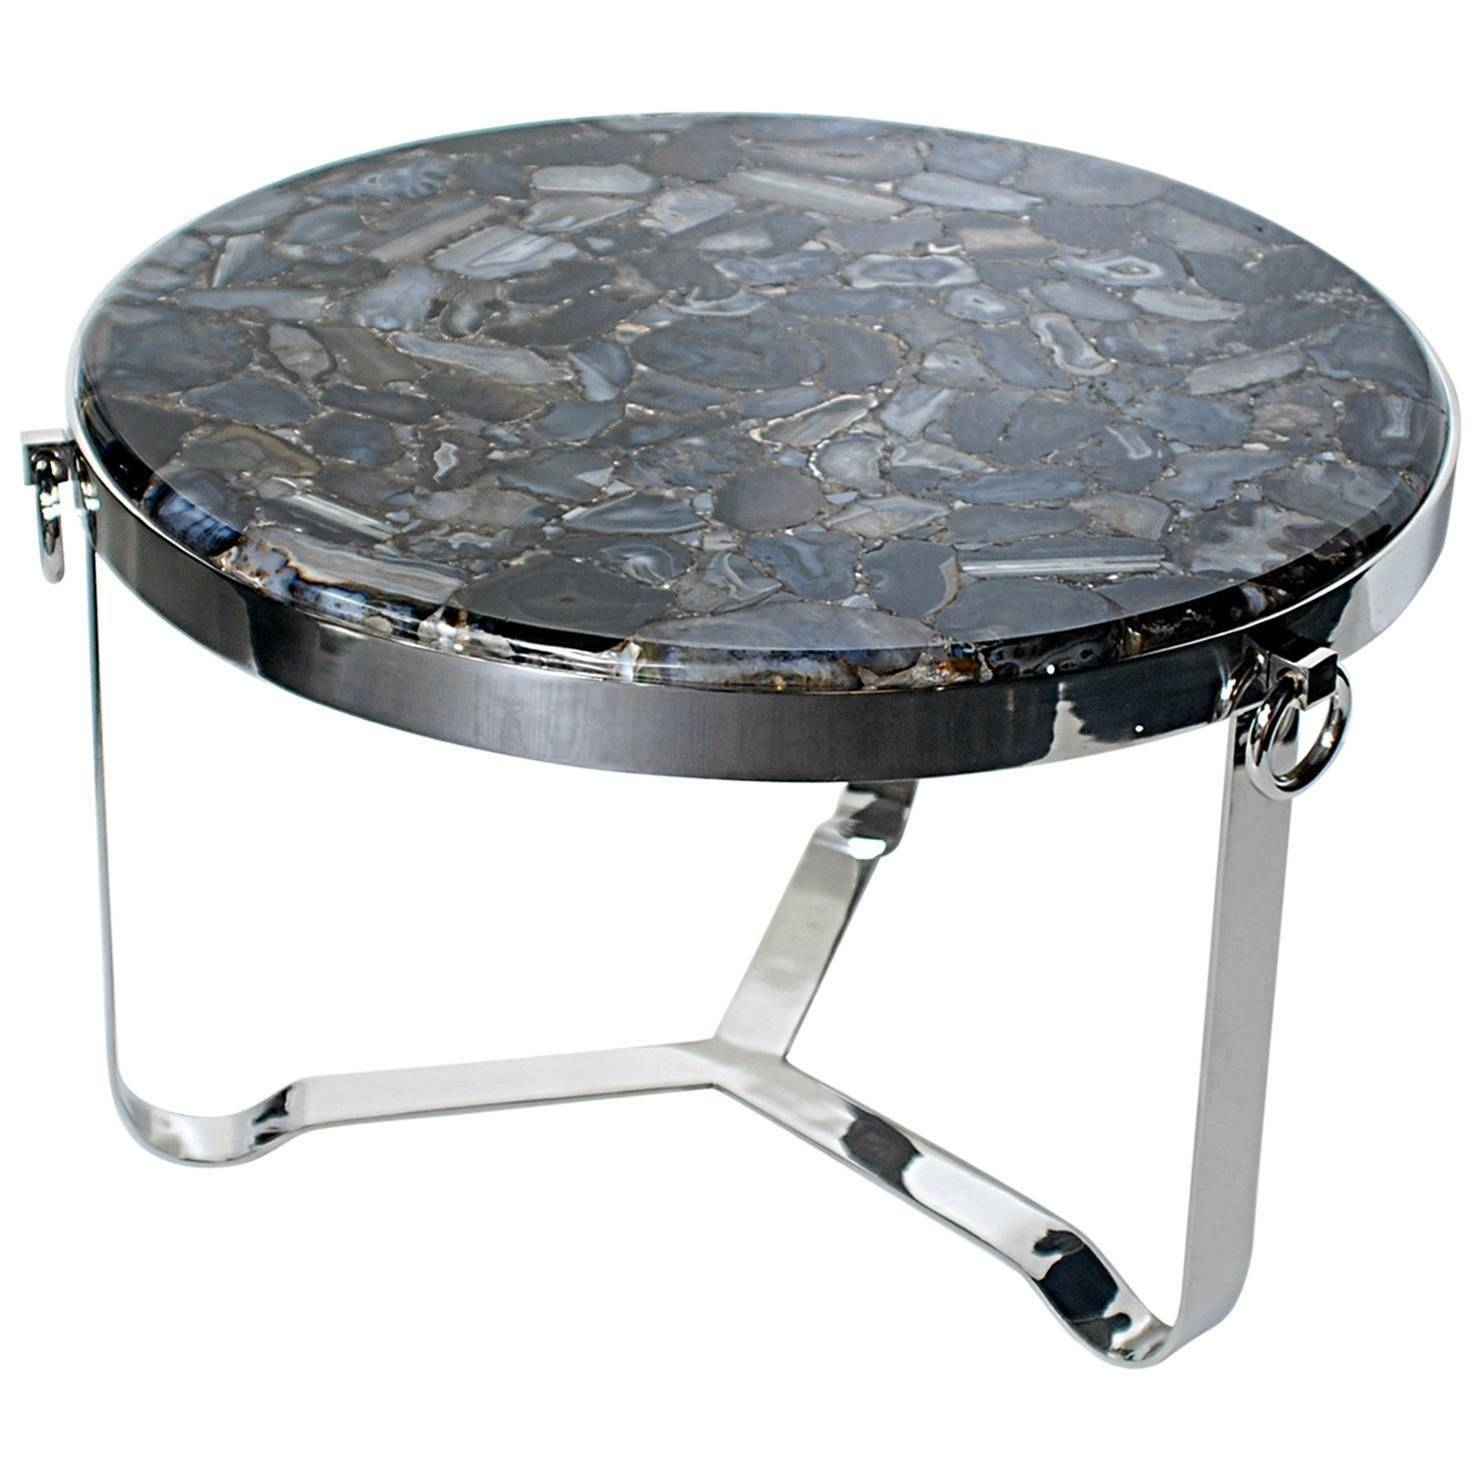 Round Chrome Coffee Table With Agate Top, In The Manner Of Maison within Round Chrome Coffee Tables (Image 22 of 30)